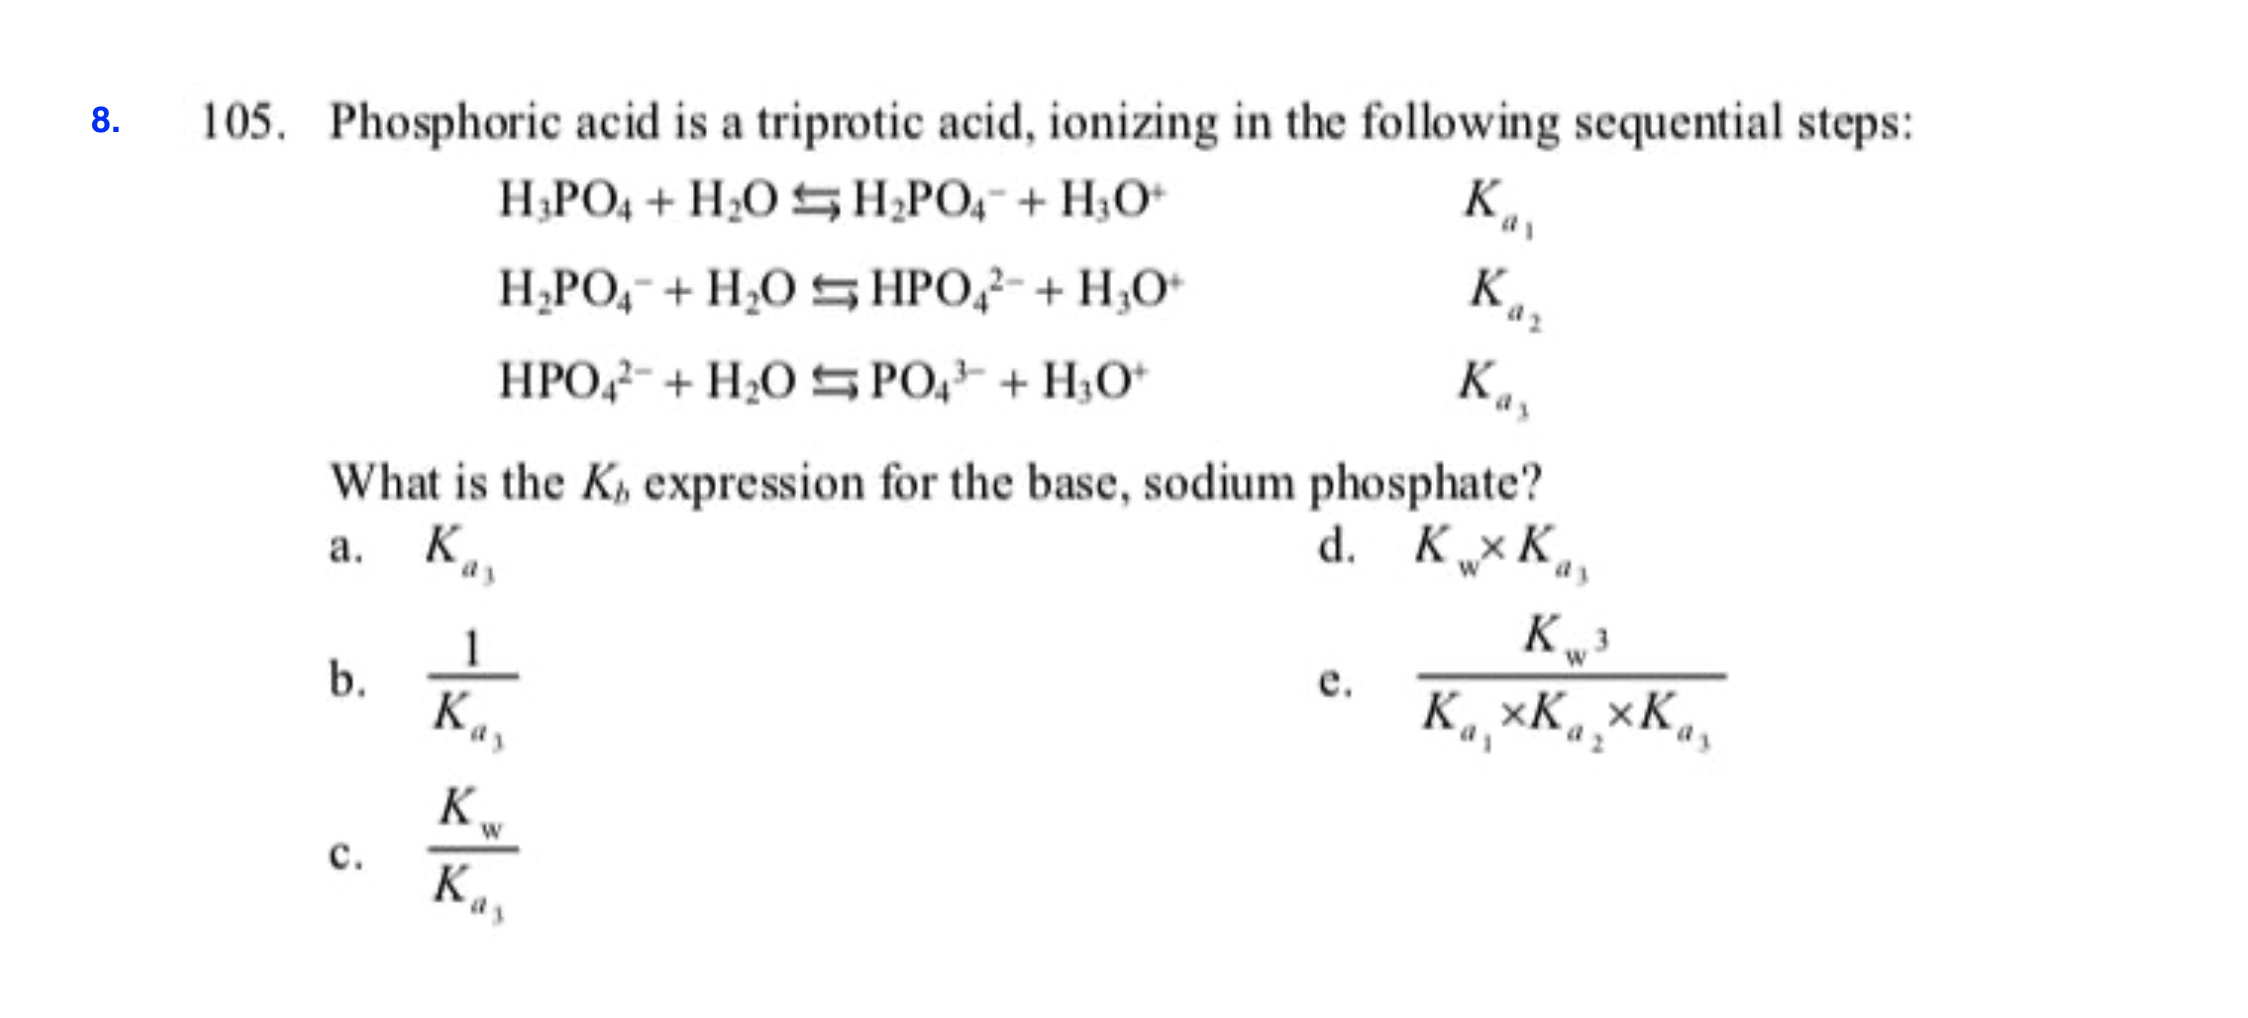 105. Phosphoric acid is a triprotic acid, ionizing in the following sequential steps: 8 К, Н.РО, + H.0 н,РО, + Н,О- Ка, H POHOsHPOHO Кл, HPO H2OS PO HO What is the K expression for the base, sodium phosphate? а. К d. КхК,, кр К, хК, хК. 1 b. К., е. K с. К,